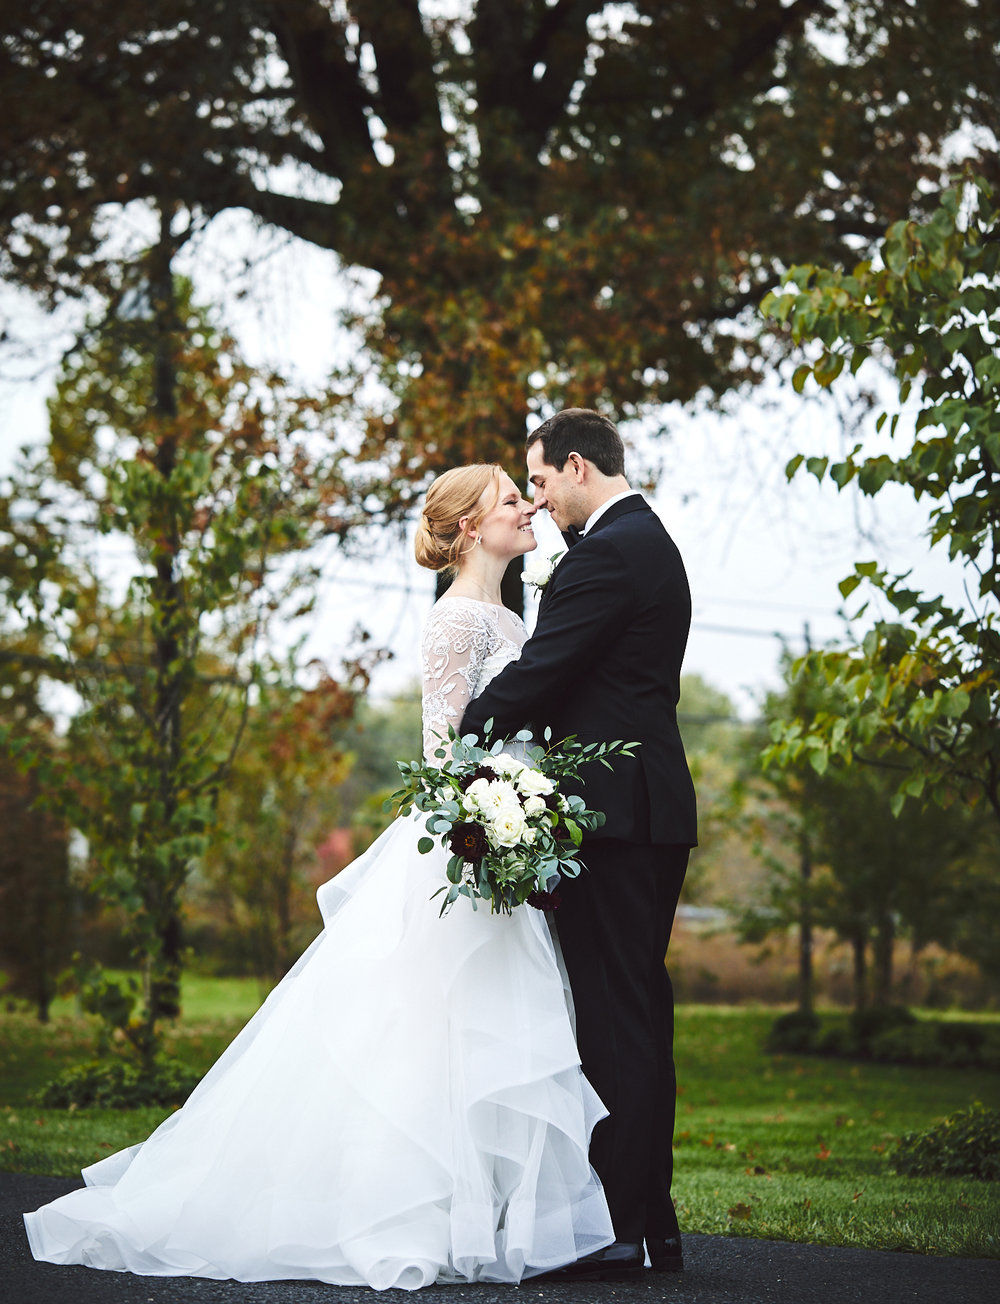 181027_TheRylandInnFallWeddingPhotography_NJWeddingPhotographer_By_BriJohnsonWeddings_0062.jpg